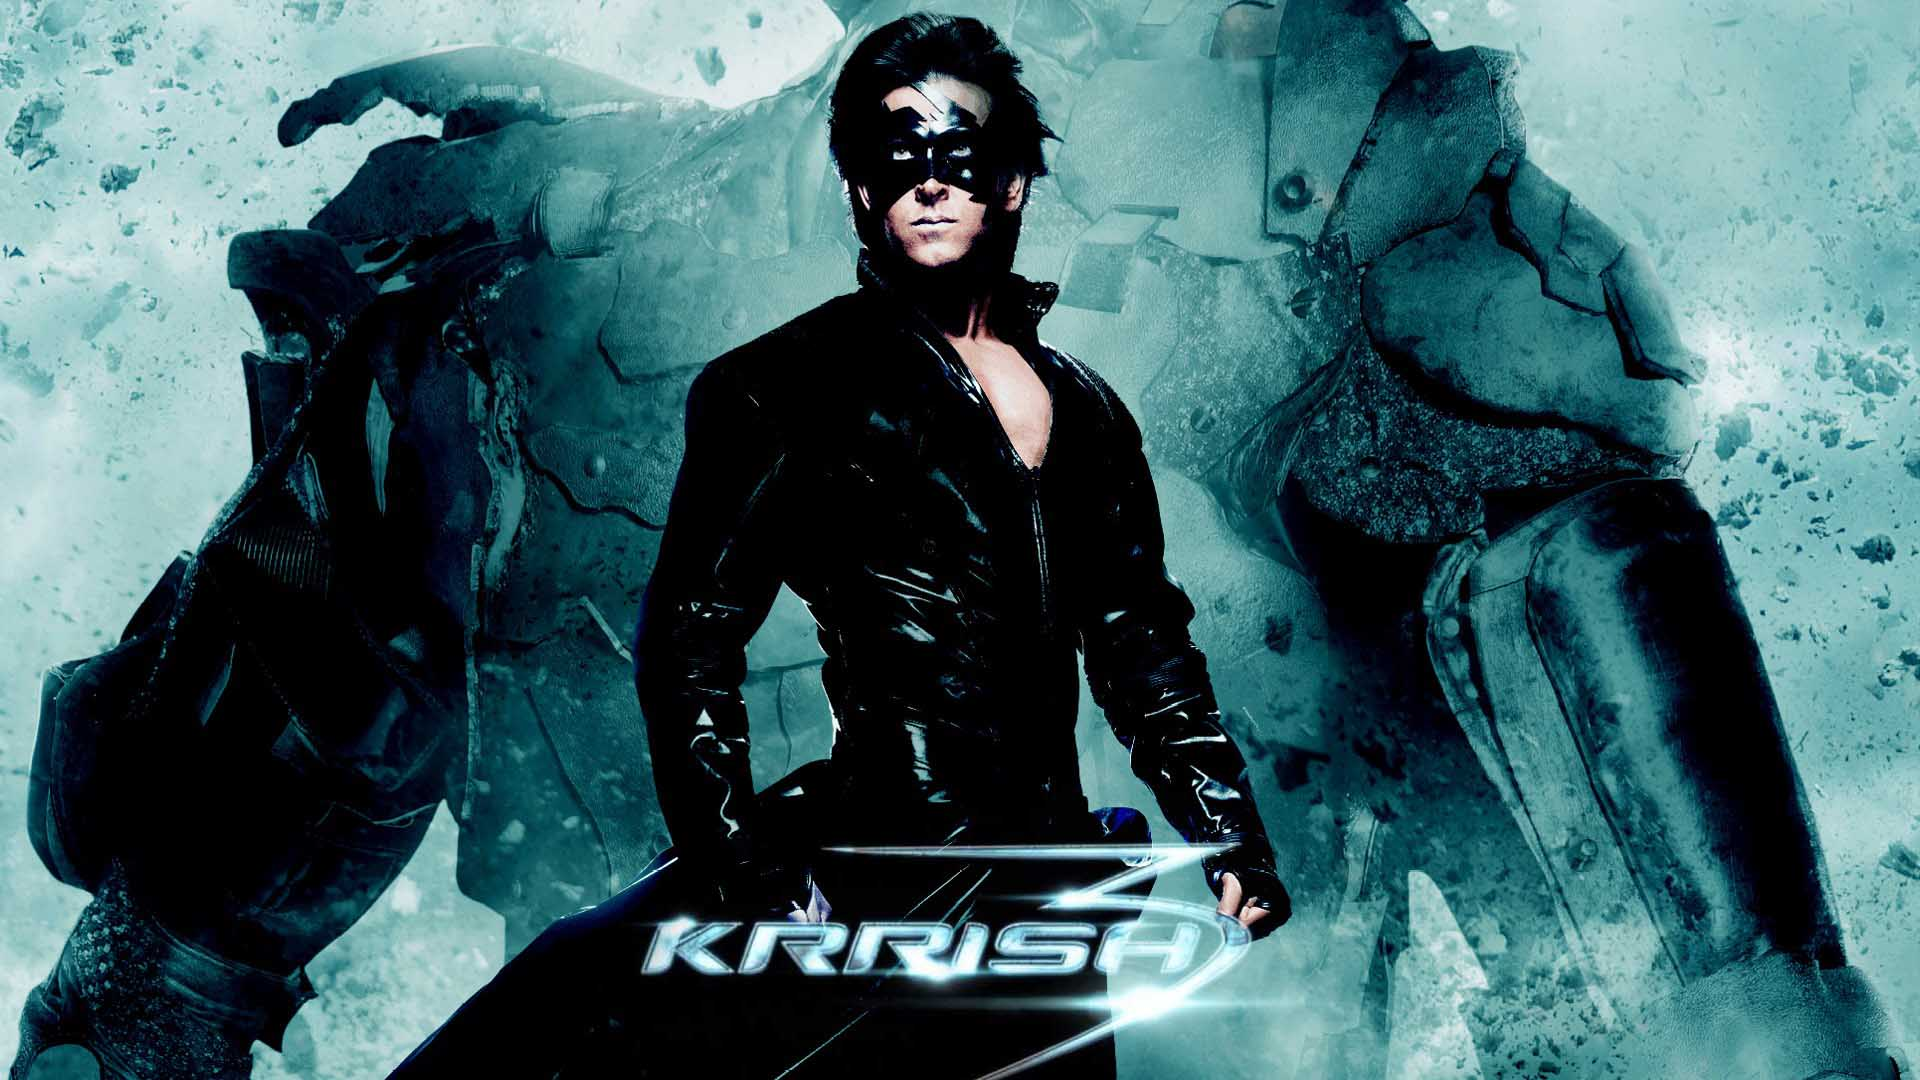 Krrish 3 – When East Meets West